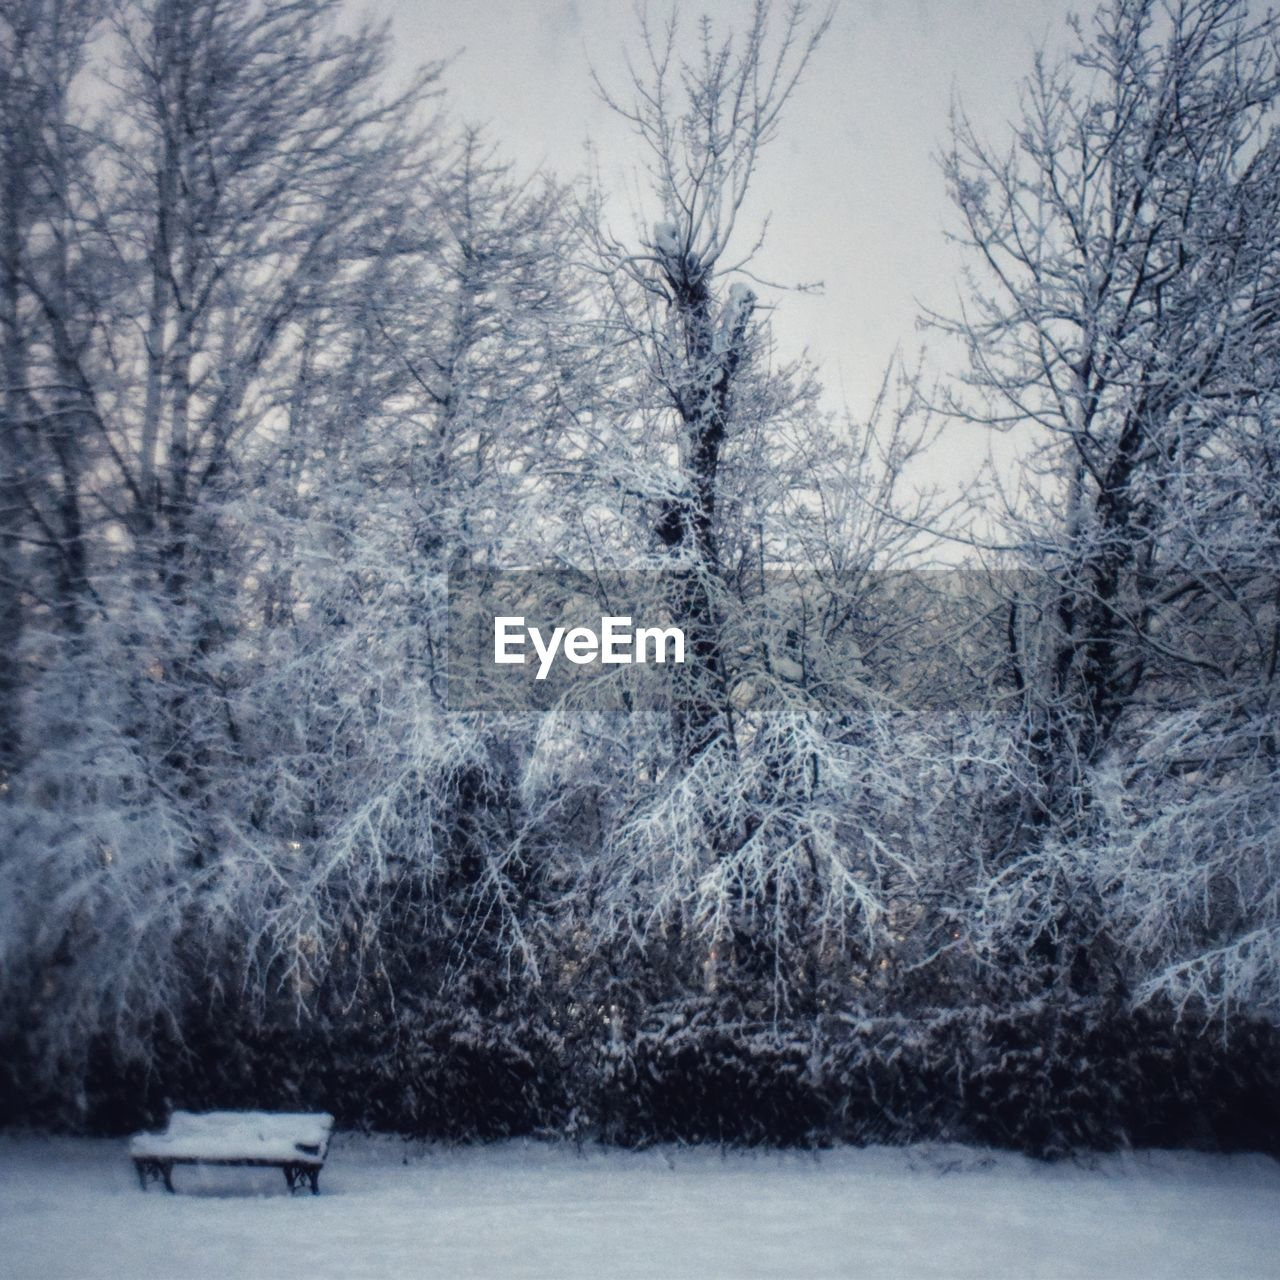 tree, snow, winter, cold temperature, plant, nature, forest, bare tree, bench, snowing, branch, land, frozen, no people, day, tranquility, storm, beauty in nature, scenics - nature, extreme weather, blizzard, park bench